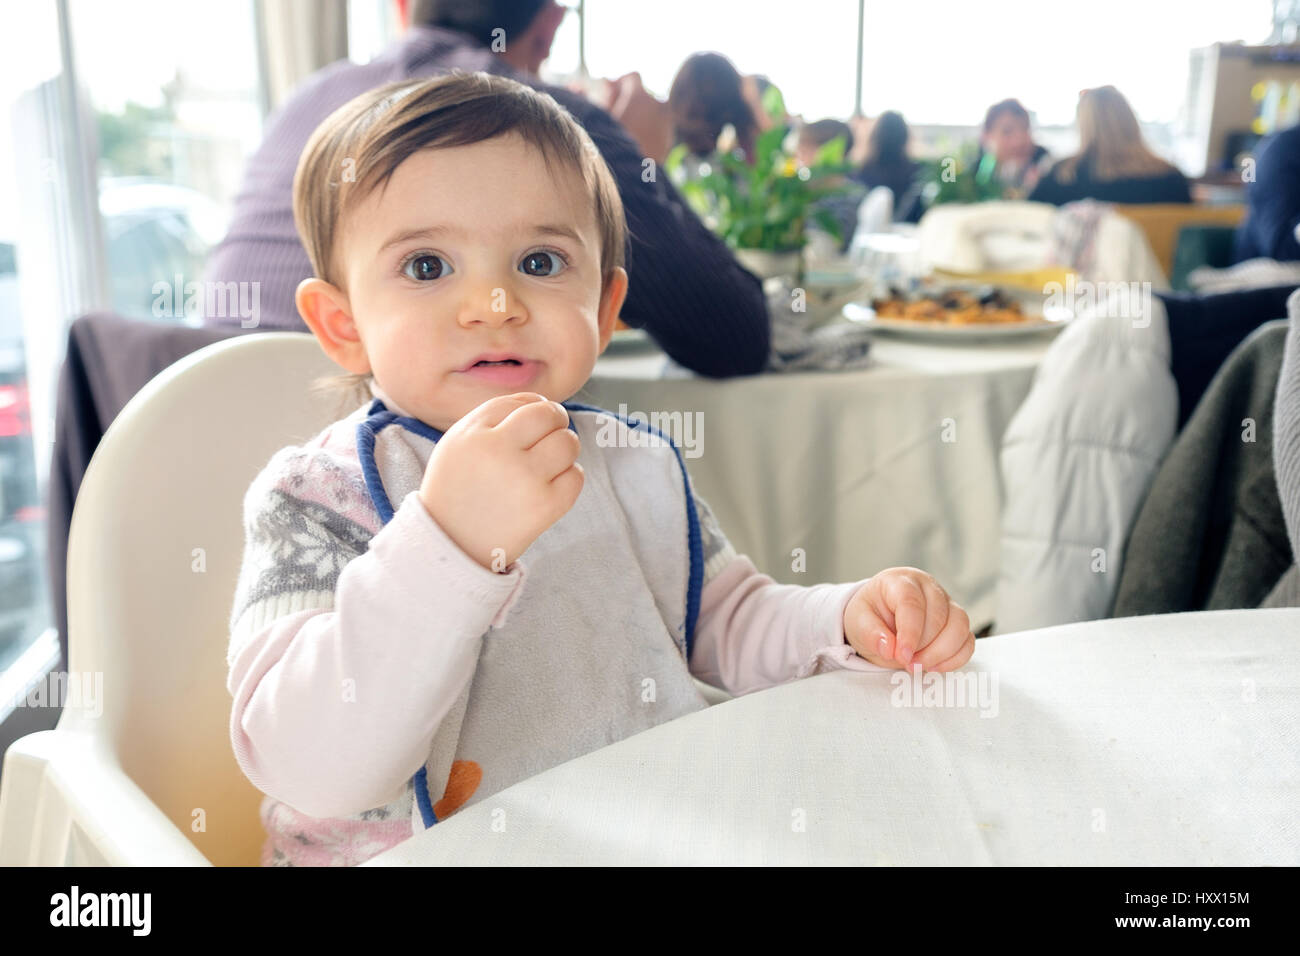 Fantastic Newborn Restaurant Baby Bib High Chair Table Eating Chew Ocoug Best Dining Table And Chair Ideas Images Ocougorg